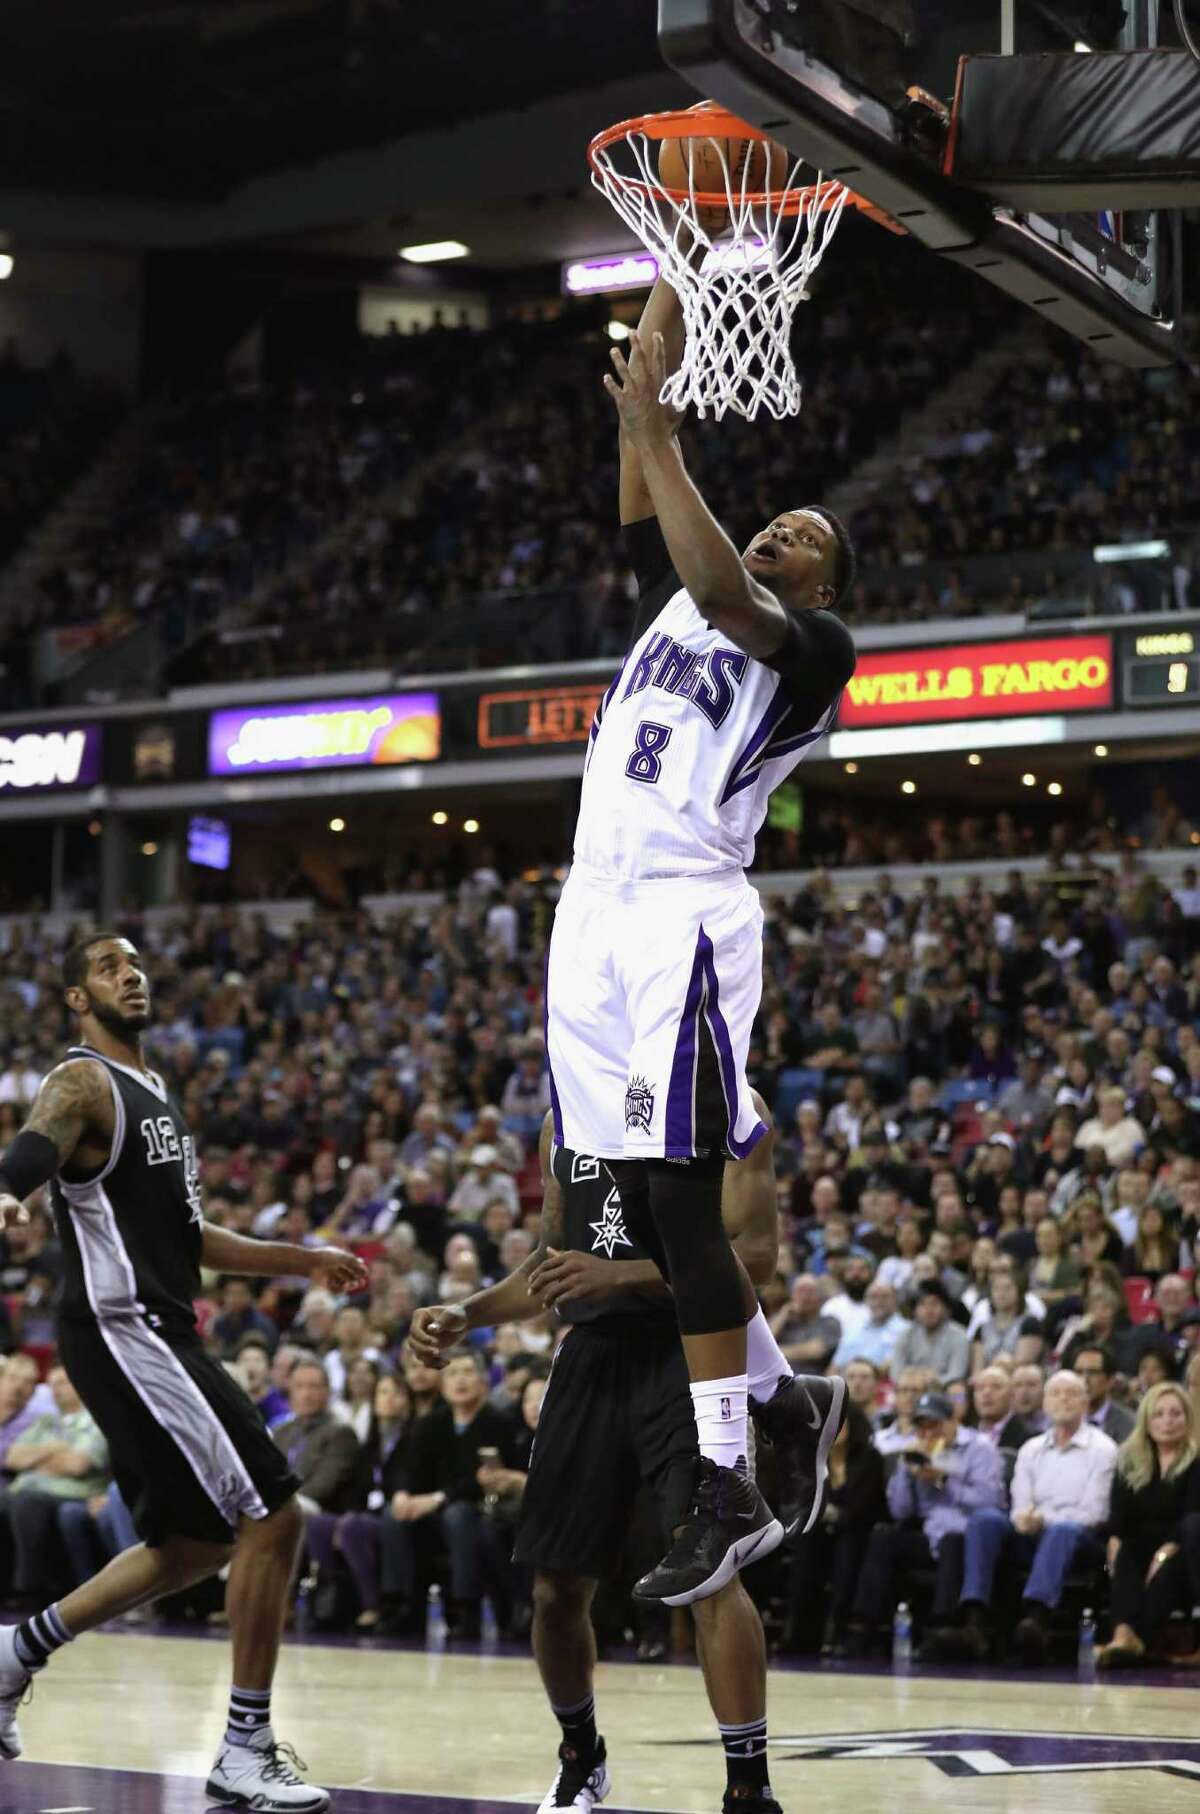 SACRAMENTO, CA - FEBRUARY 24: Rudy Gay #8 of the Sacramento Kings goes up for a dunk against the San Antonio Spurs at Sleep Train Arena on February 24, 2016 in Sacramento, California. NOTE TO USER: User expressly acknowledges and agrees that, by downloading and or using this photograph, User is consenting to the terms and conditions of the Getty Images License Agreement.